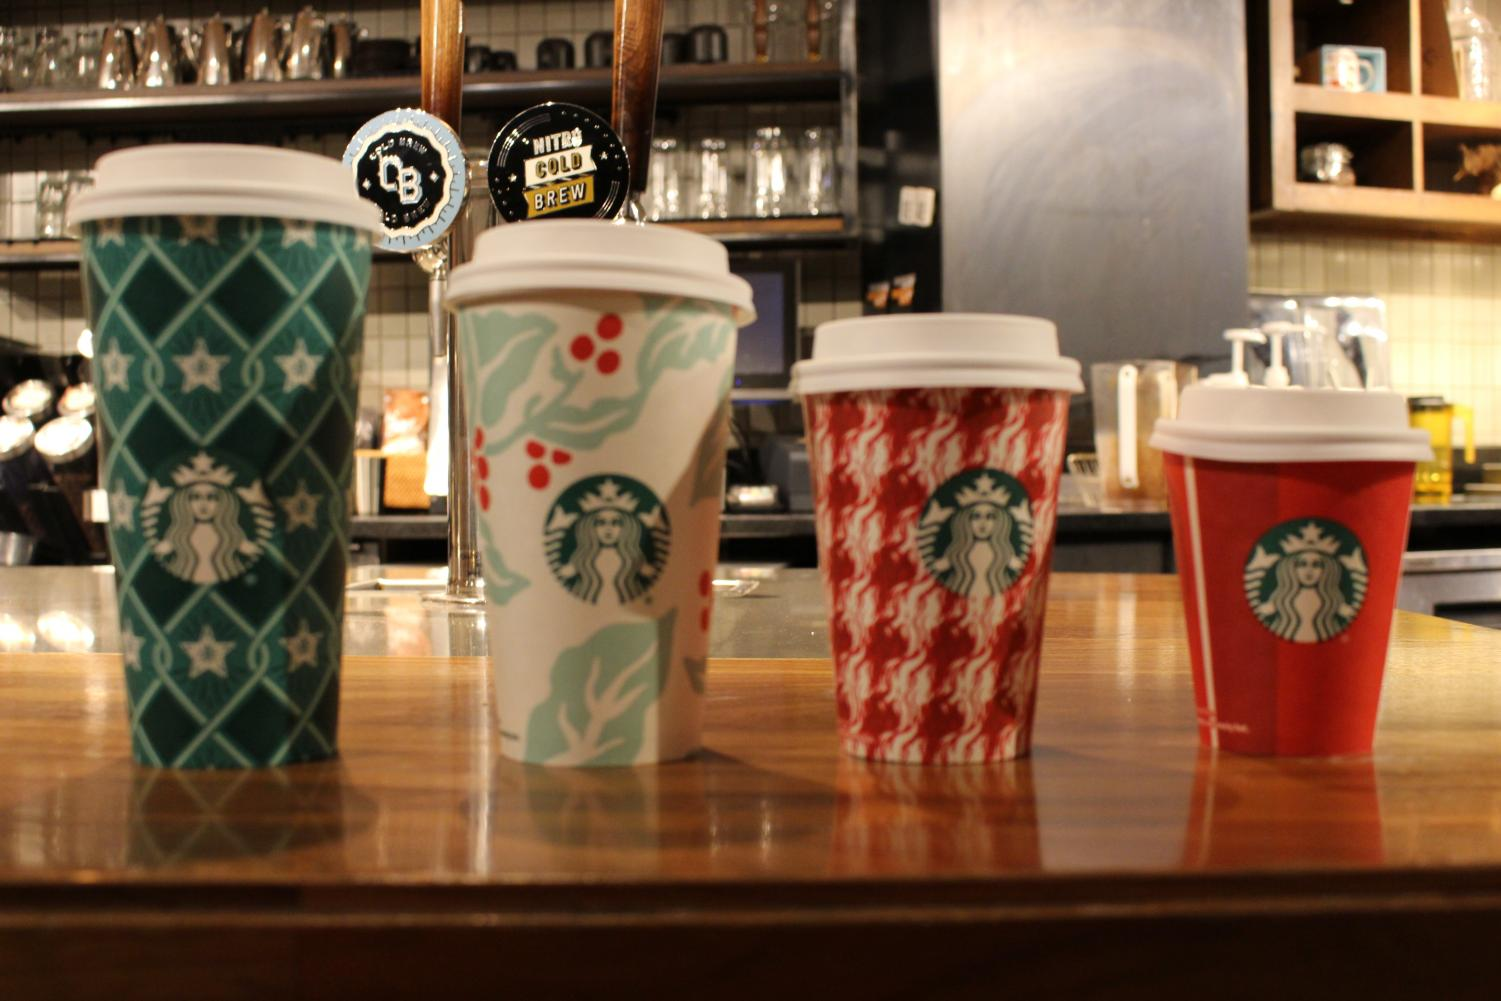 Here are some of Starbucks's new holiday cup designs for 2018.